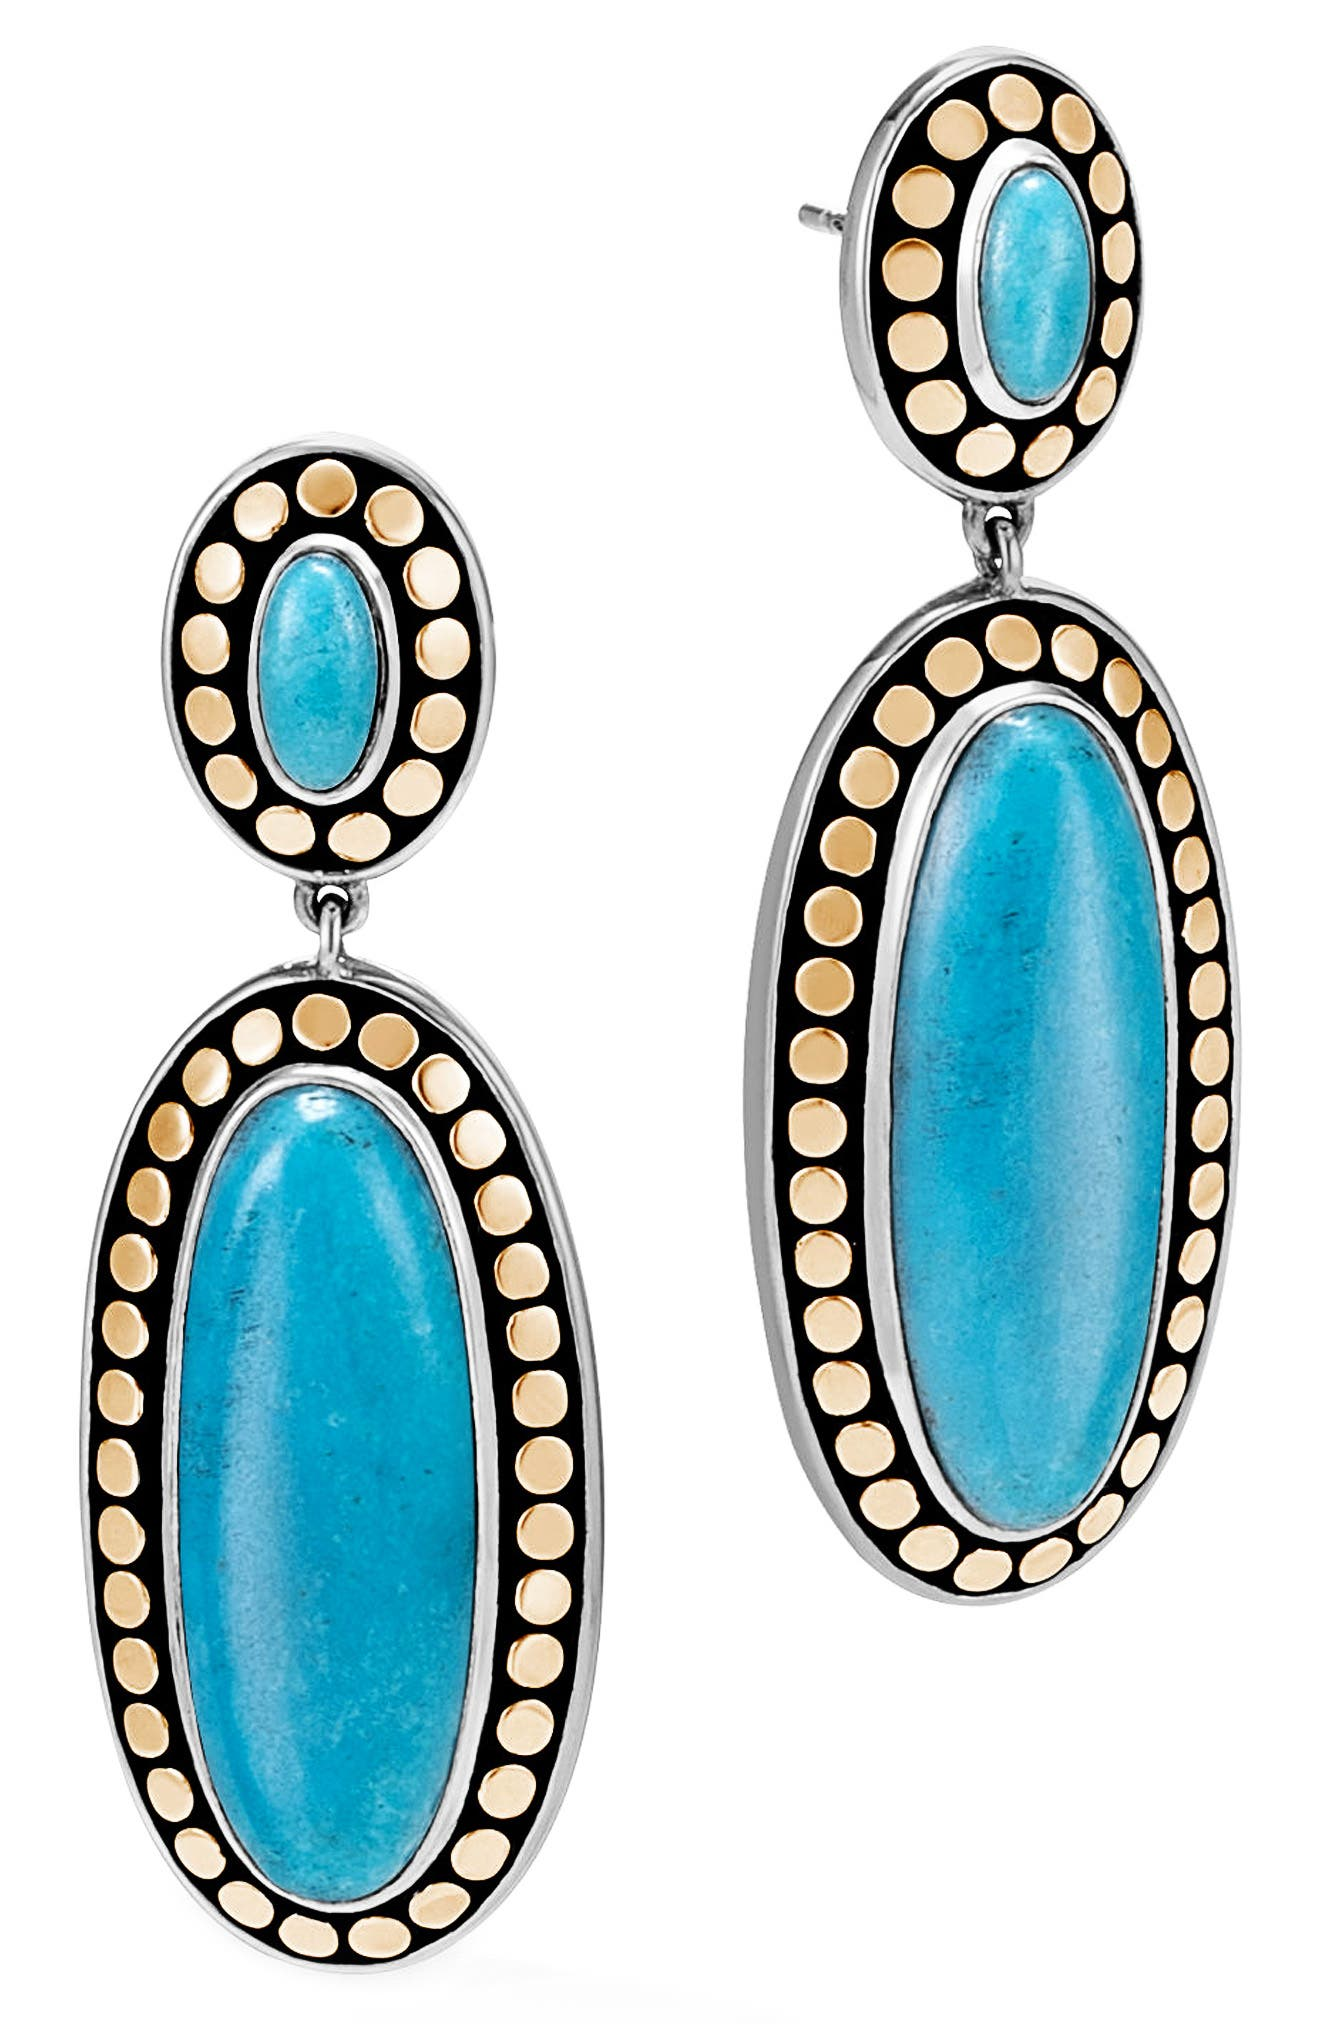 Dot Oval Drop Earrings,                         Main,                         color, Silver/ Gold/ Turquoise